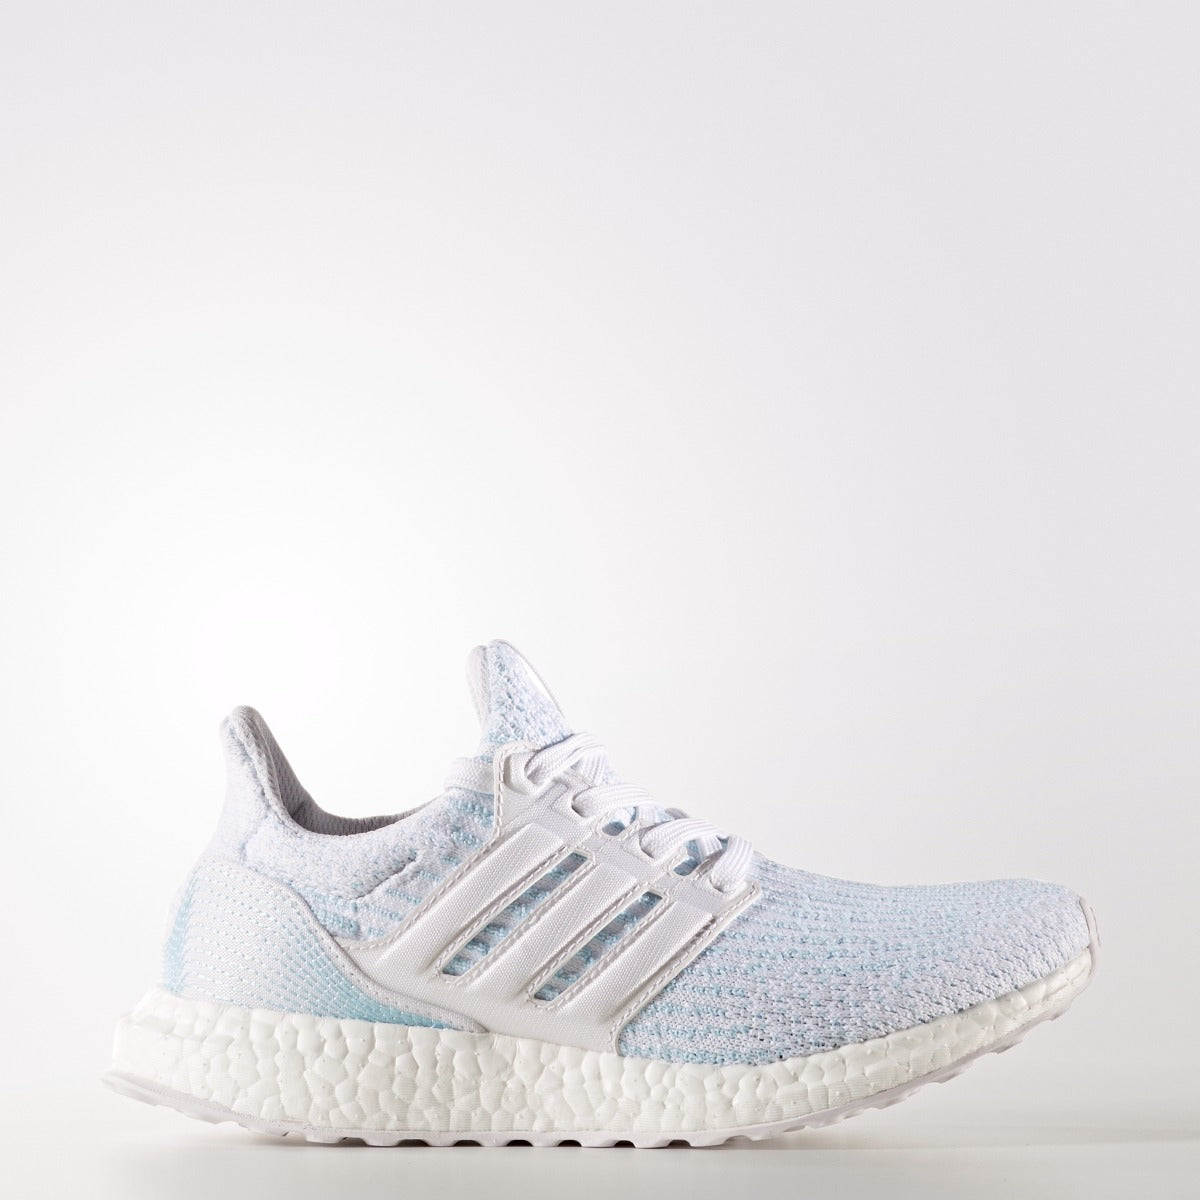 timeless design ff090 d7233 Kid's adidas Originals UltraBOOST Parley Shoes White CP9841 ...